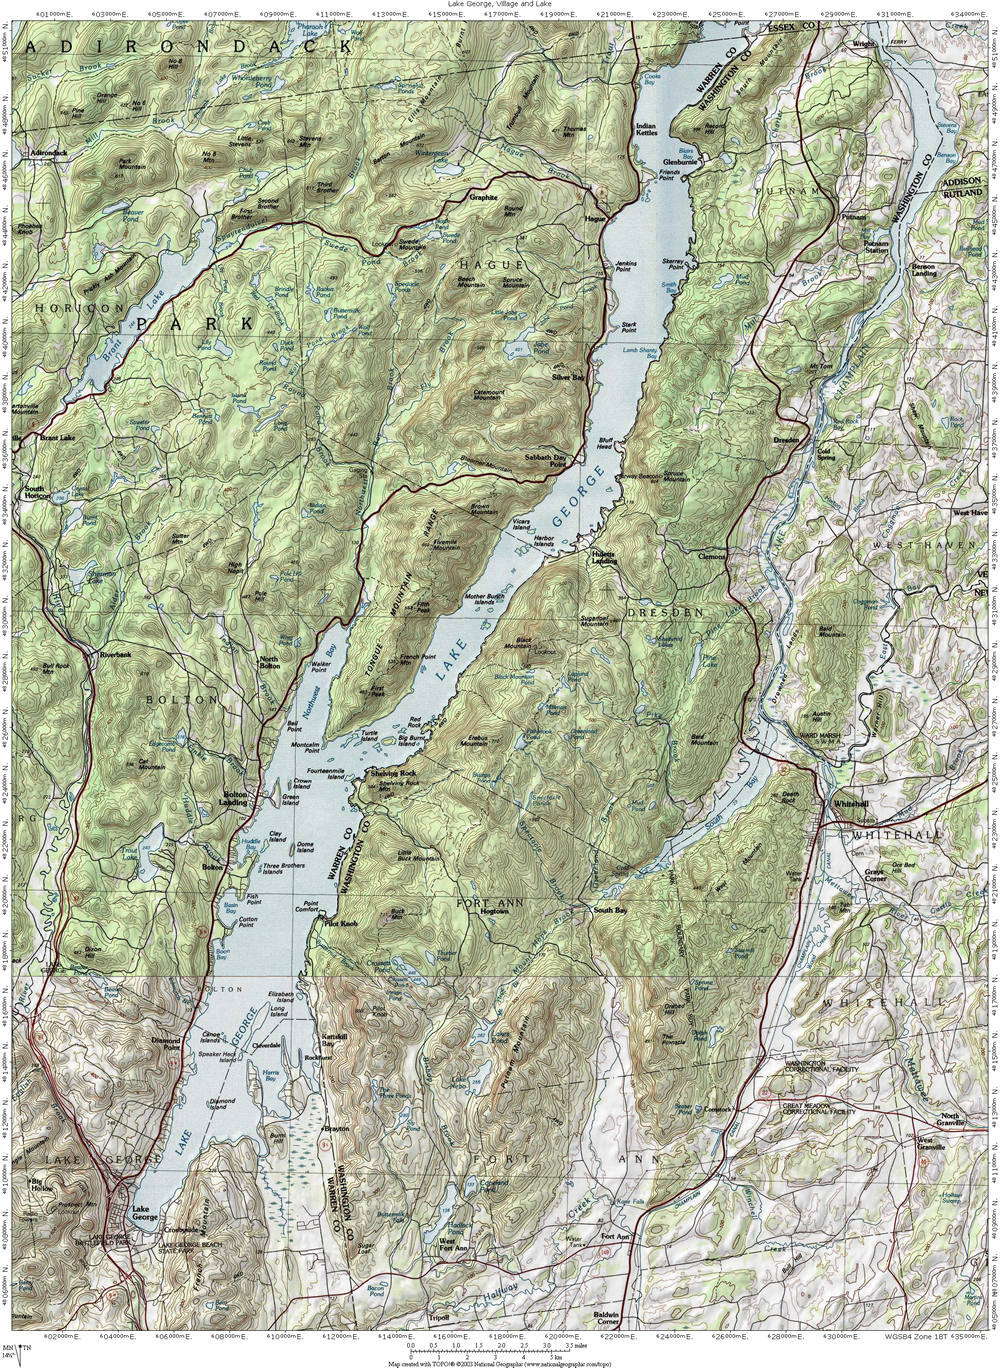 Interstate 87: The Adirondack Northway: Lake George Topographic Map